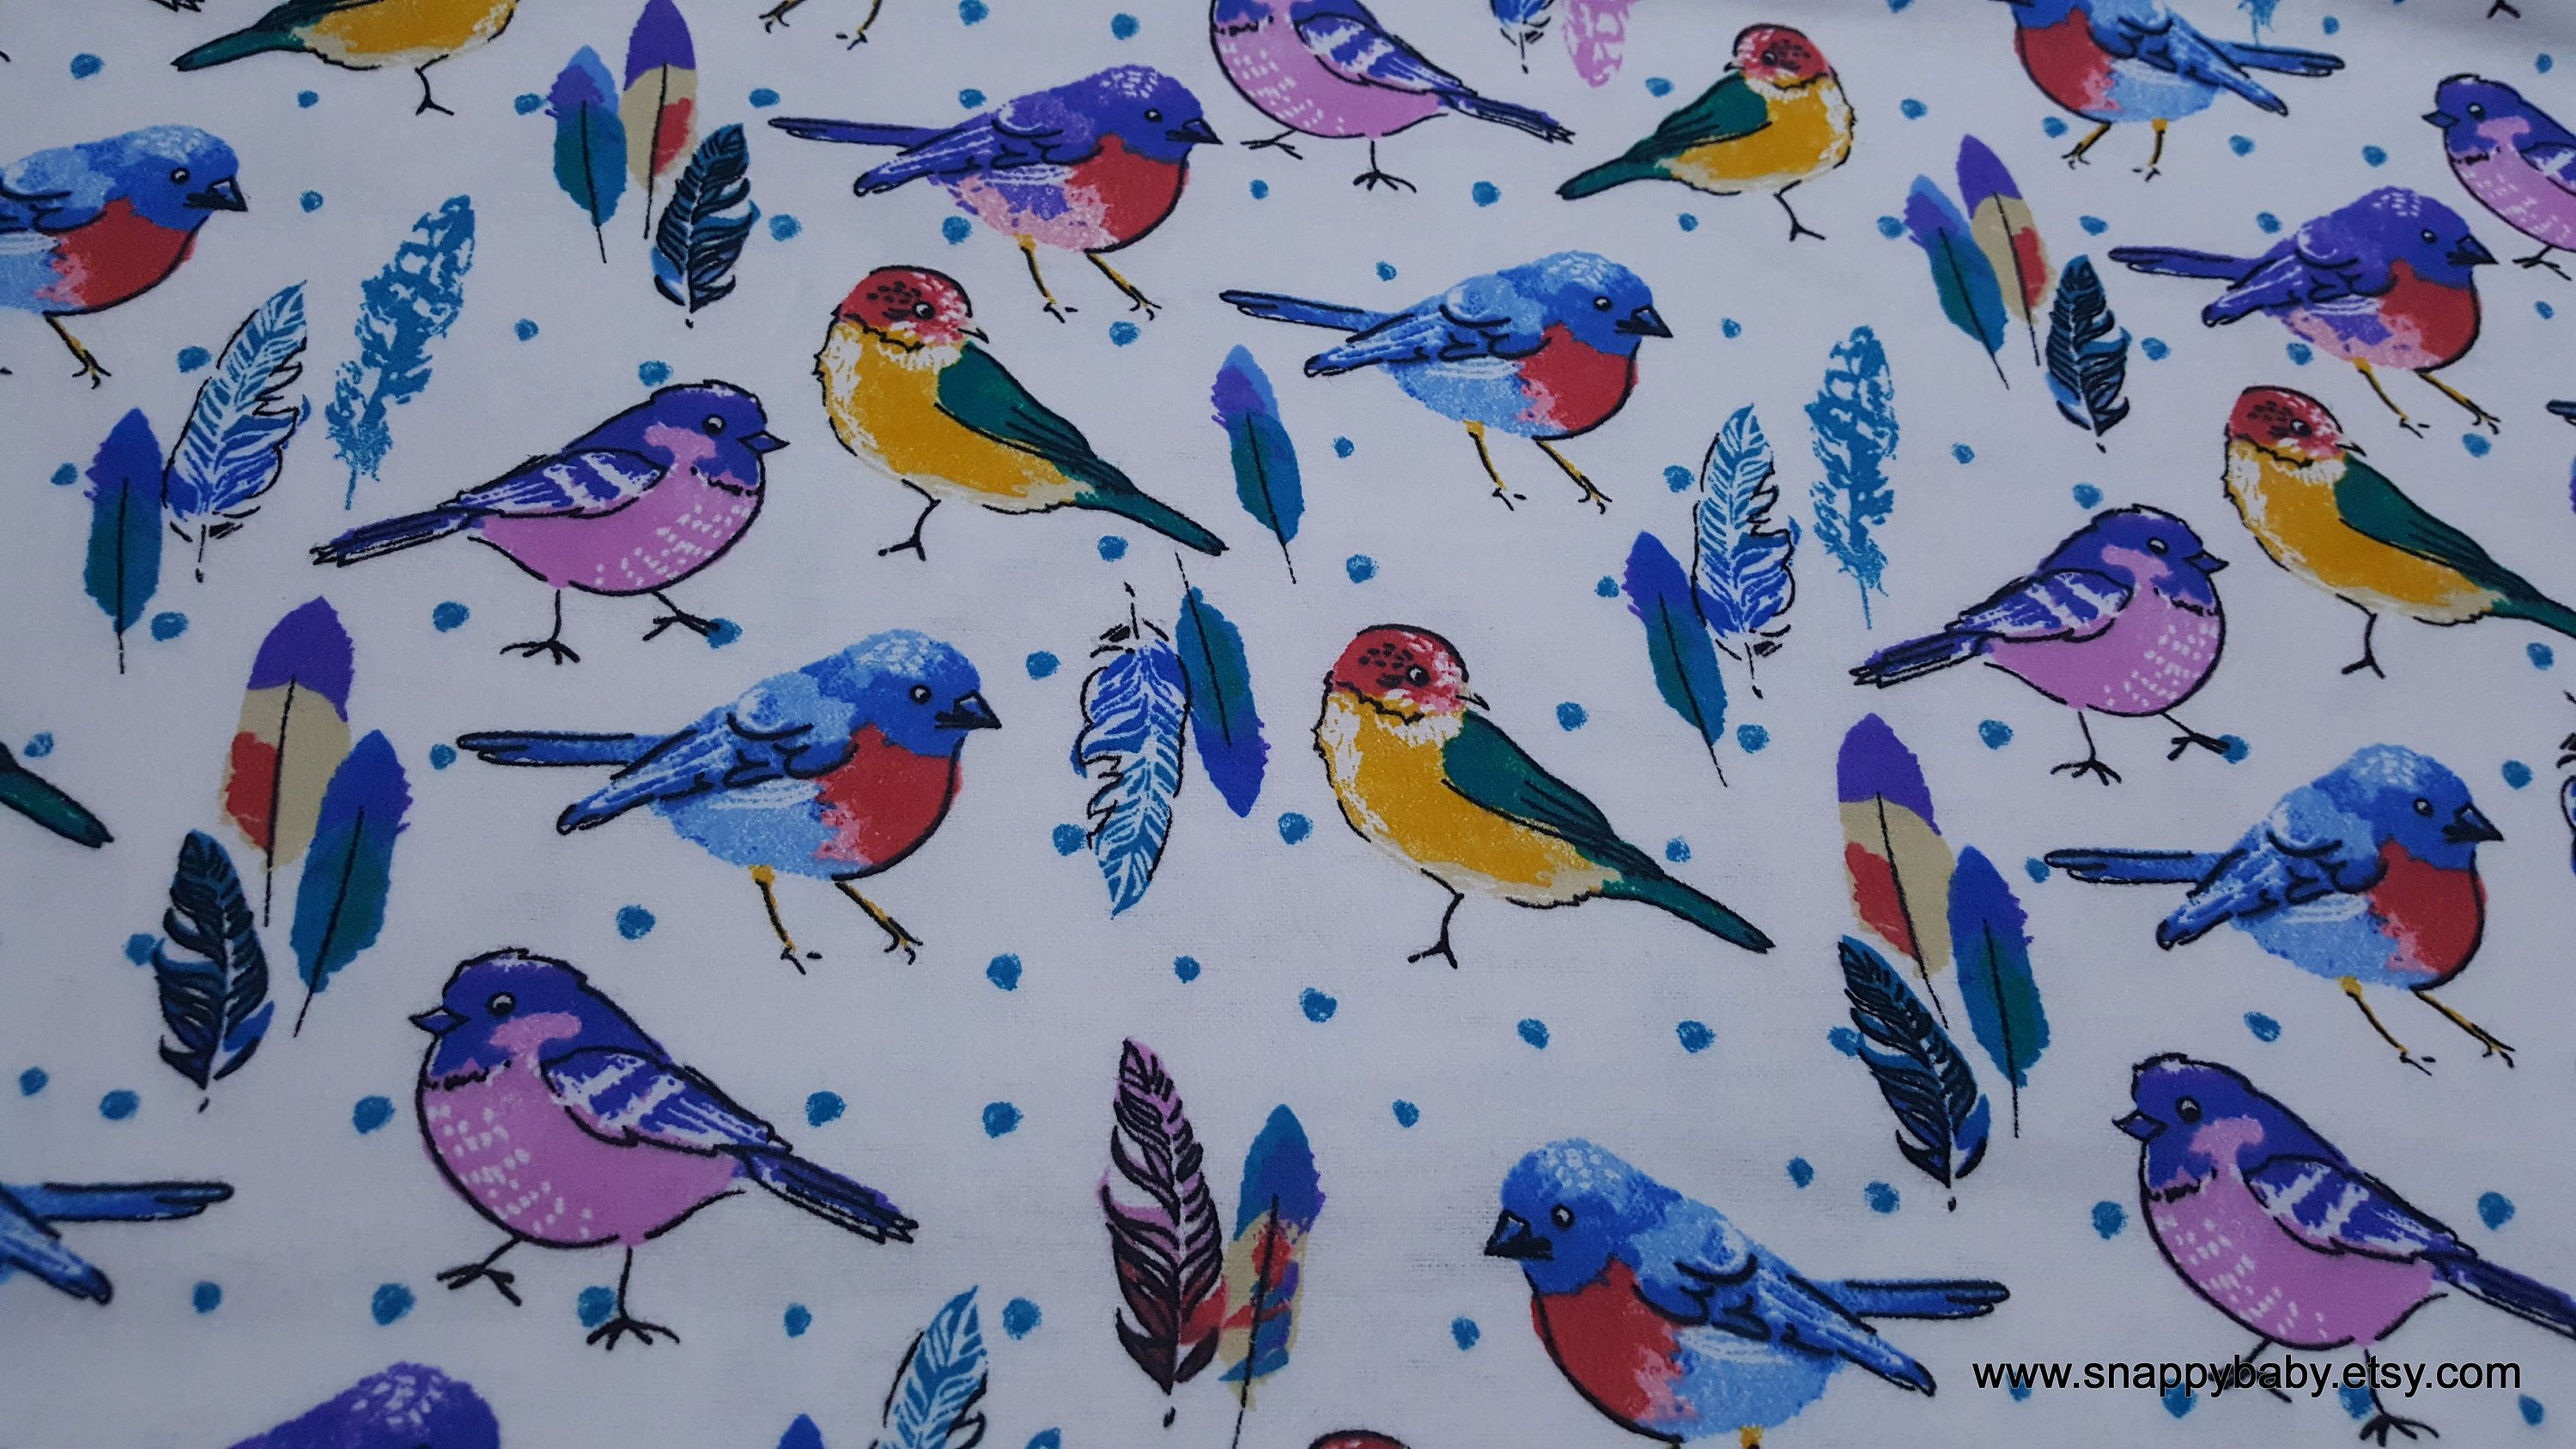 Flannel Fabric Birds And Feathers By The Yard 100 Etsy Fabric Birds Flannel Fabric Cotton Flannel